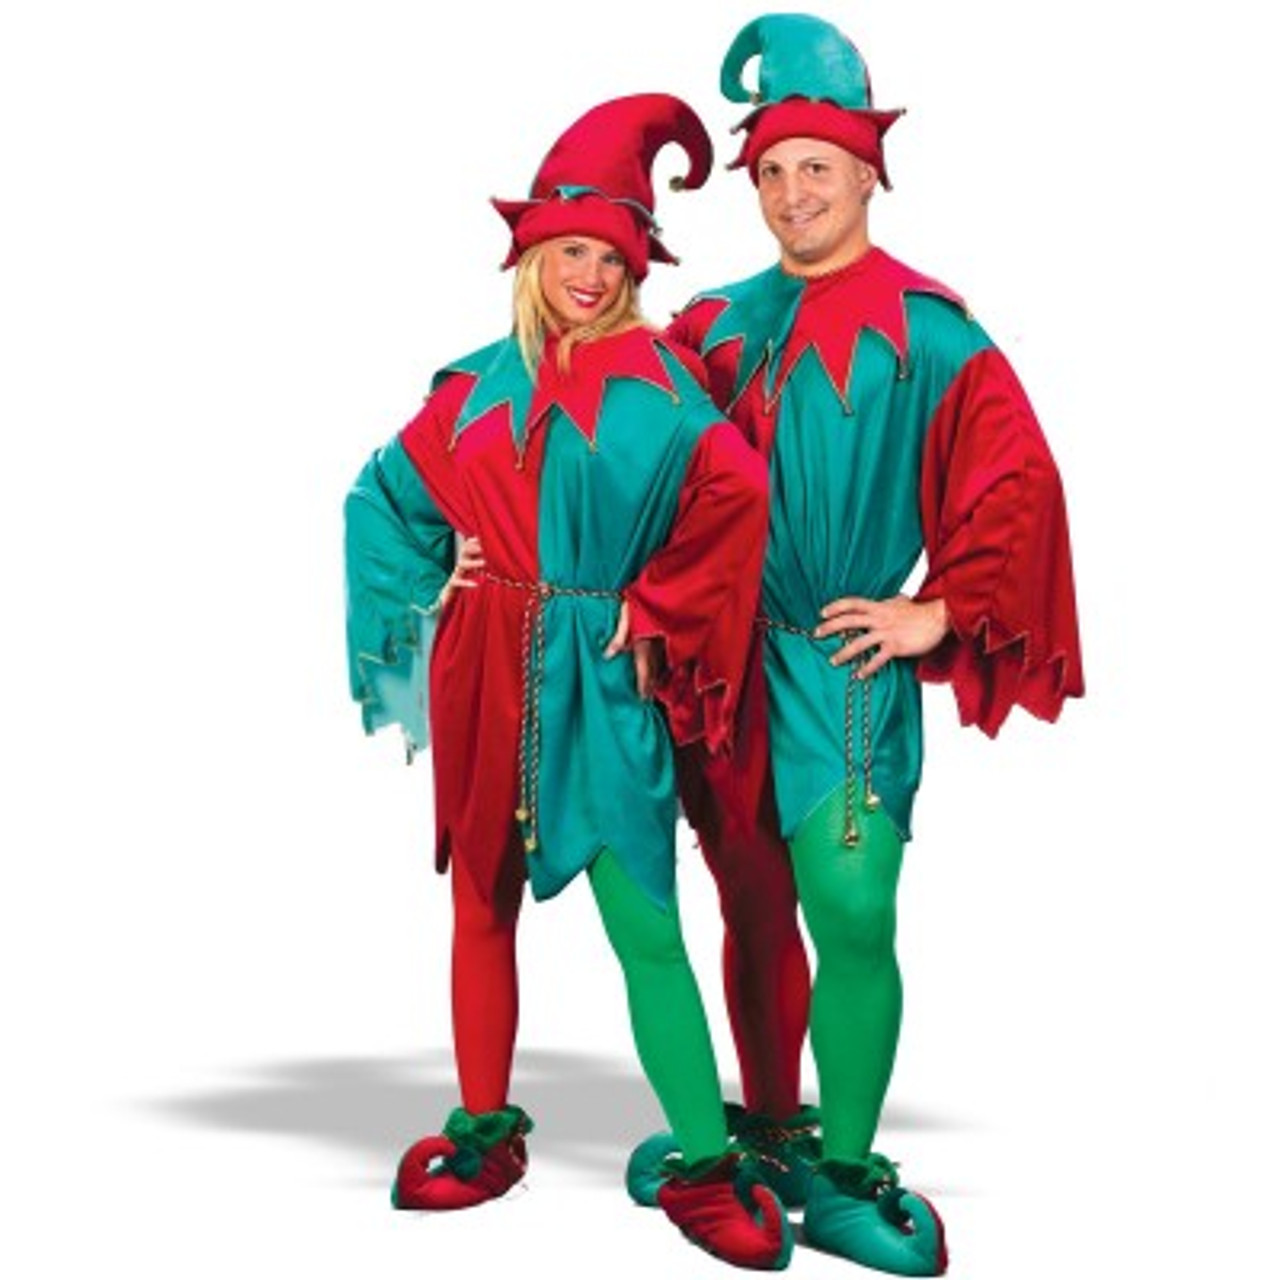 red and green unisex adult 5 piece christmas elf costume set one size fits most 6077071 - Christmas Elf Costume